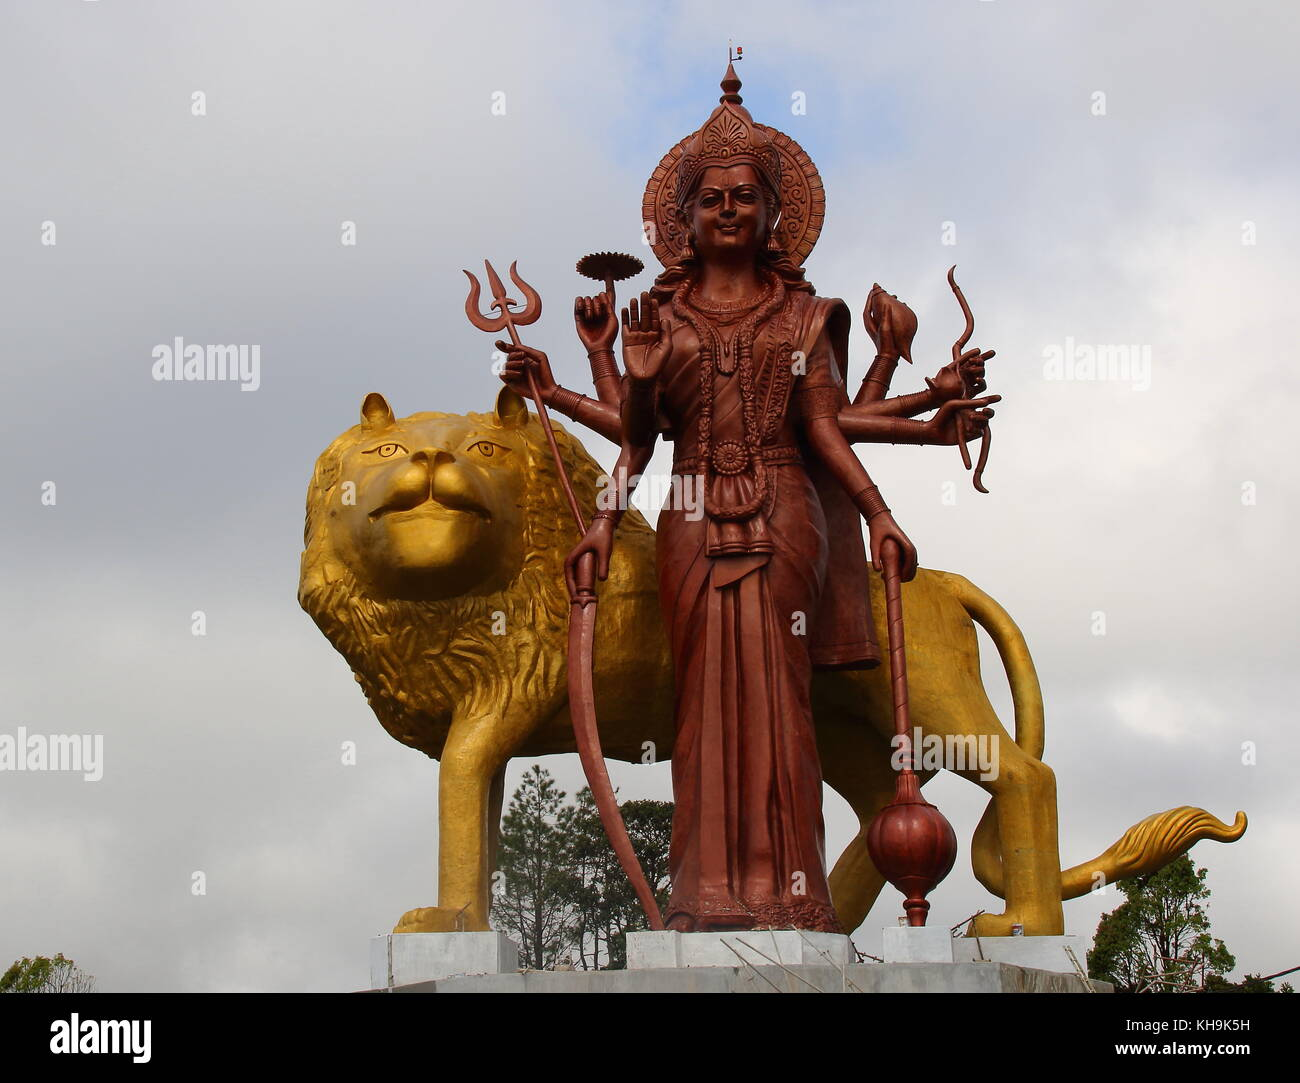 Grand Bassin, Mauritius, Hindu deity statues around the Sacred Lake are a major tourist attraction on the Indian - Stock Image